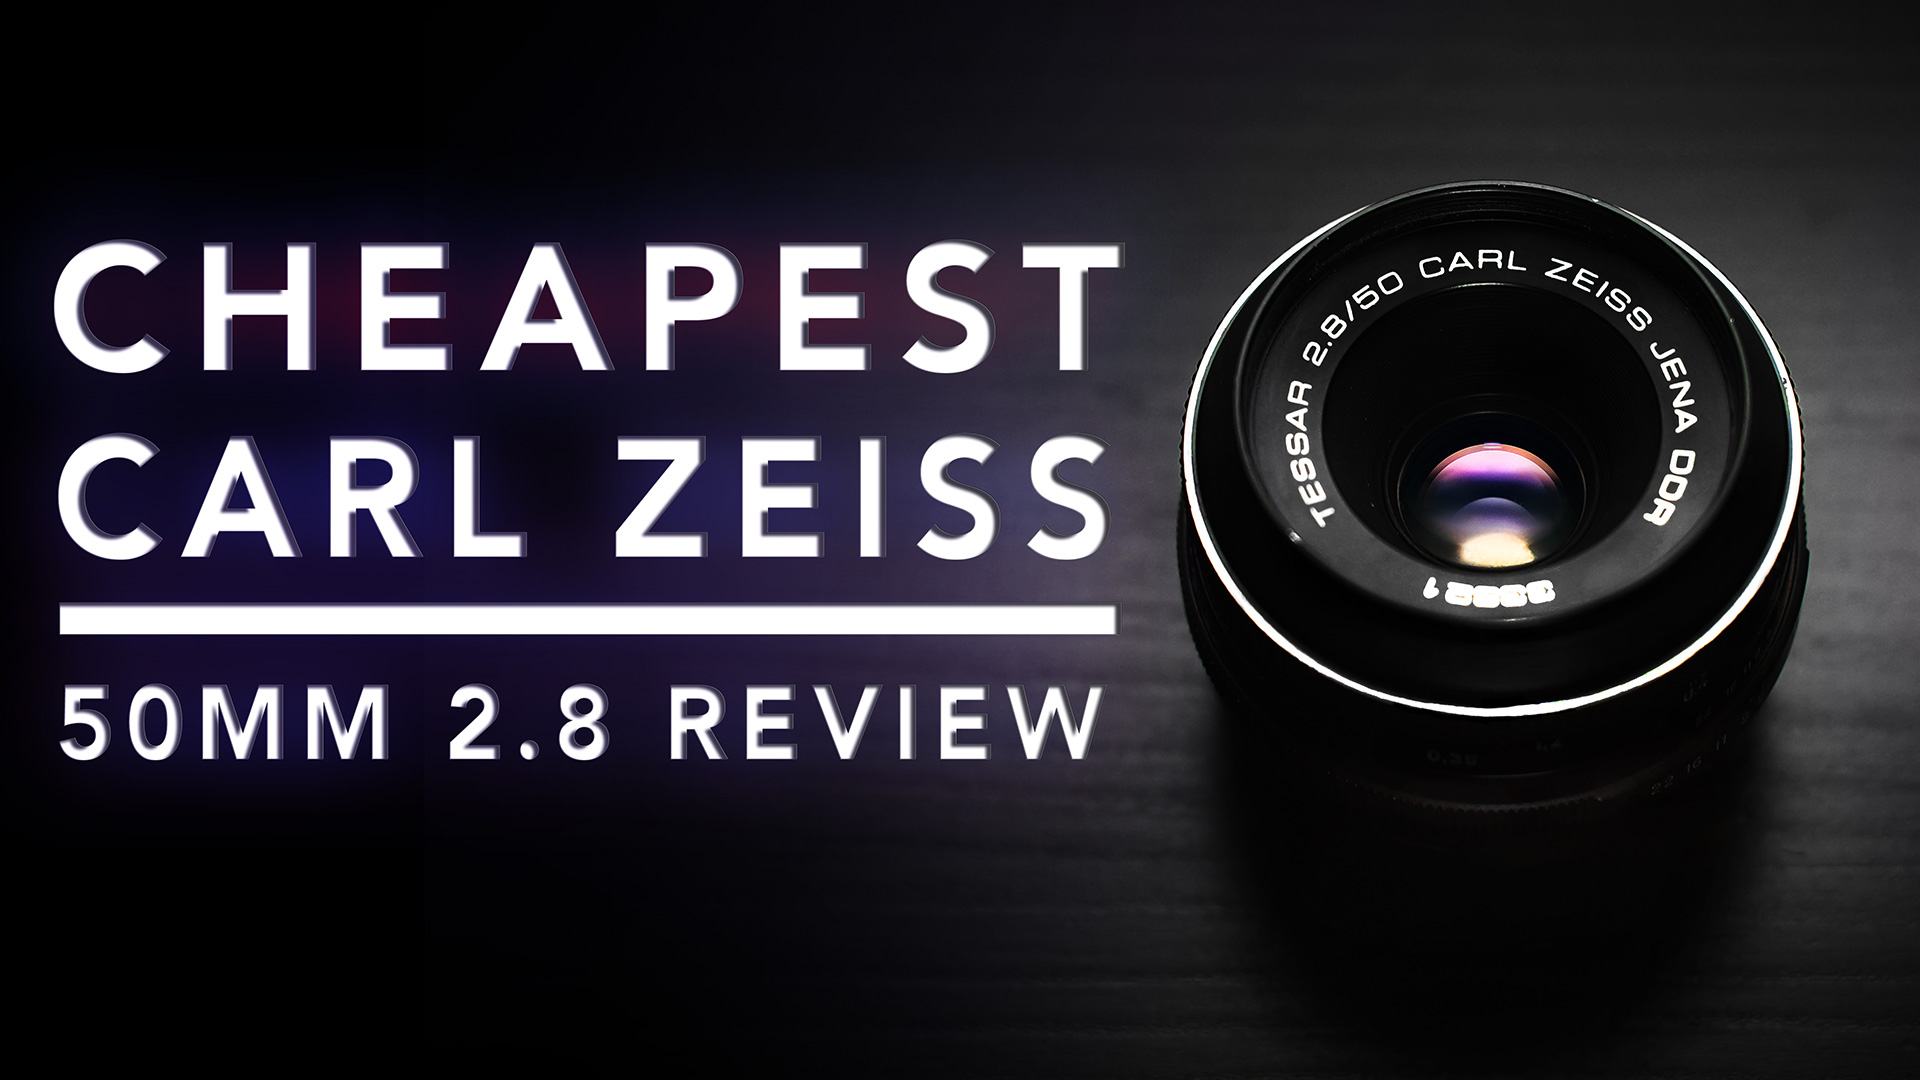 Cheapest CARL ZEISS Lens | 50mm F/2.8 | In-Depth Review